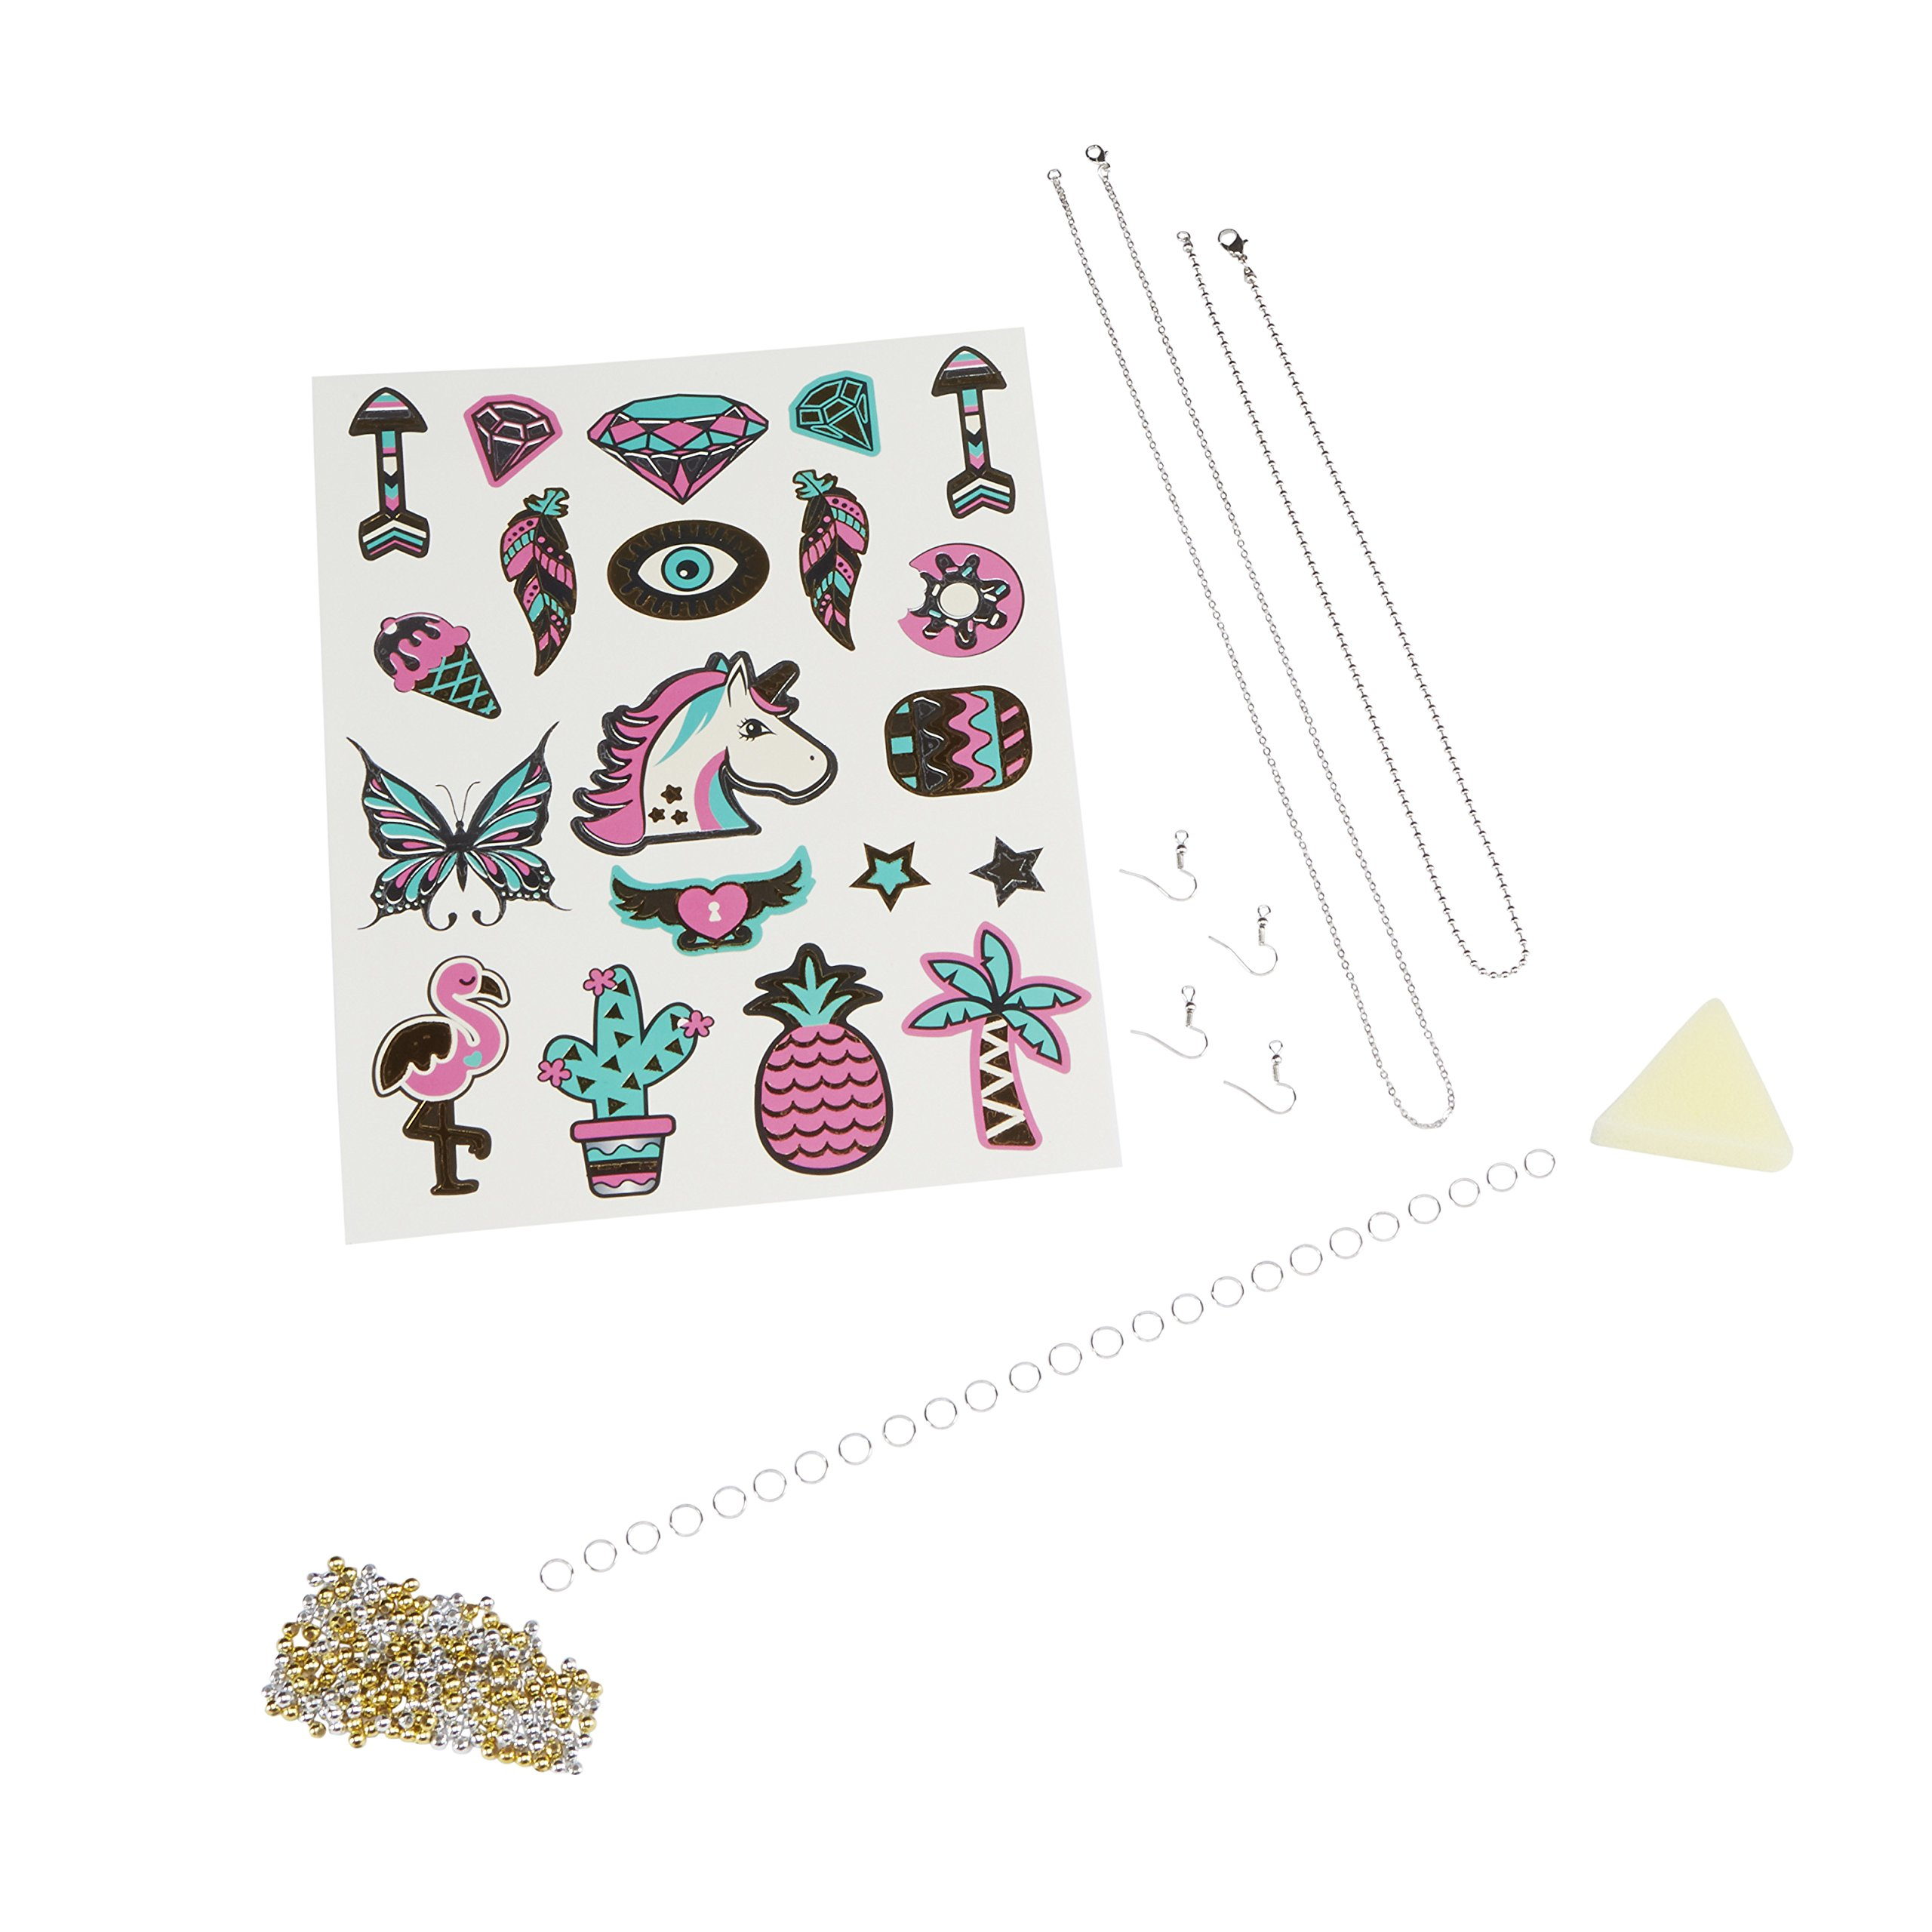 Shrinky Dinks Cool Foil Jewelry Kids Art and Craft Activity